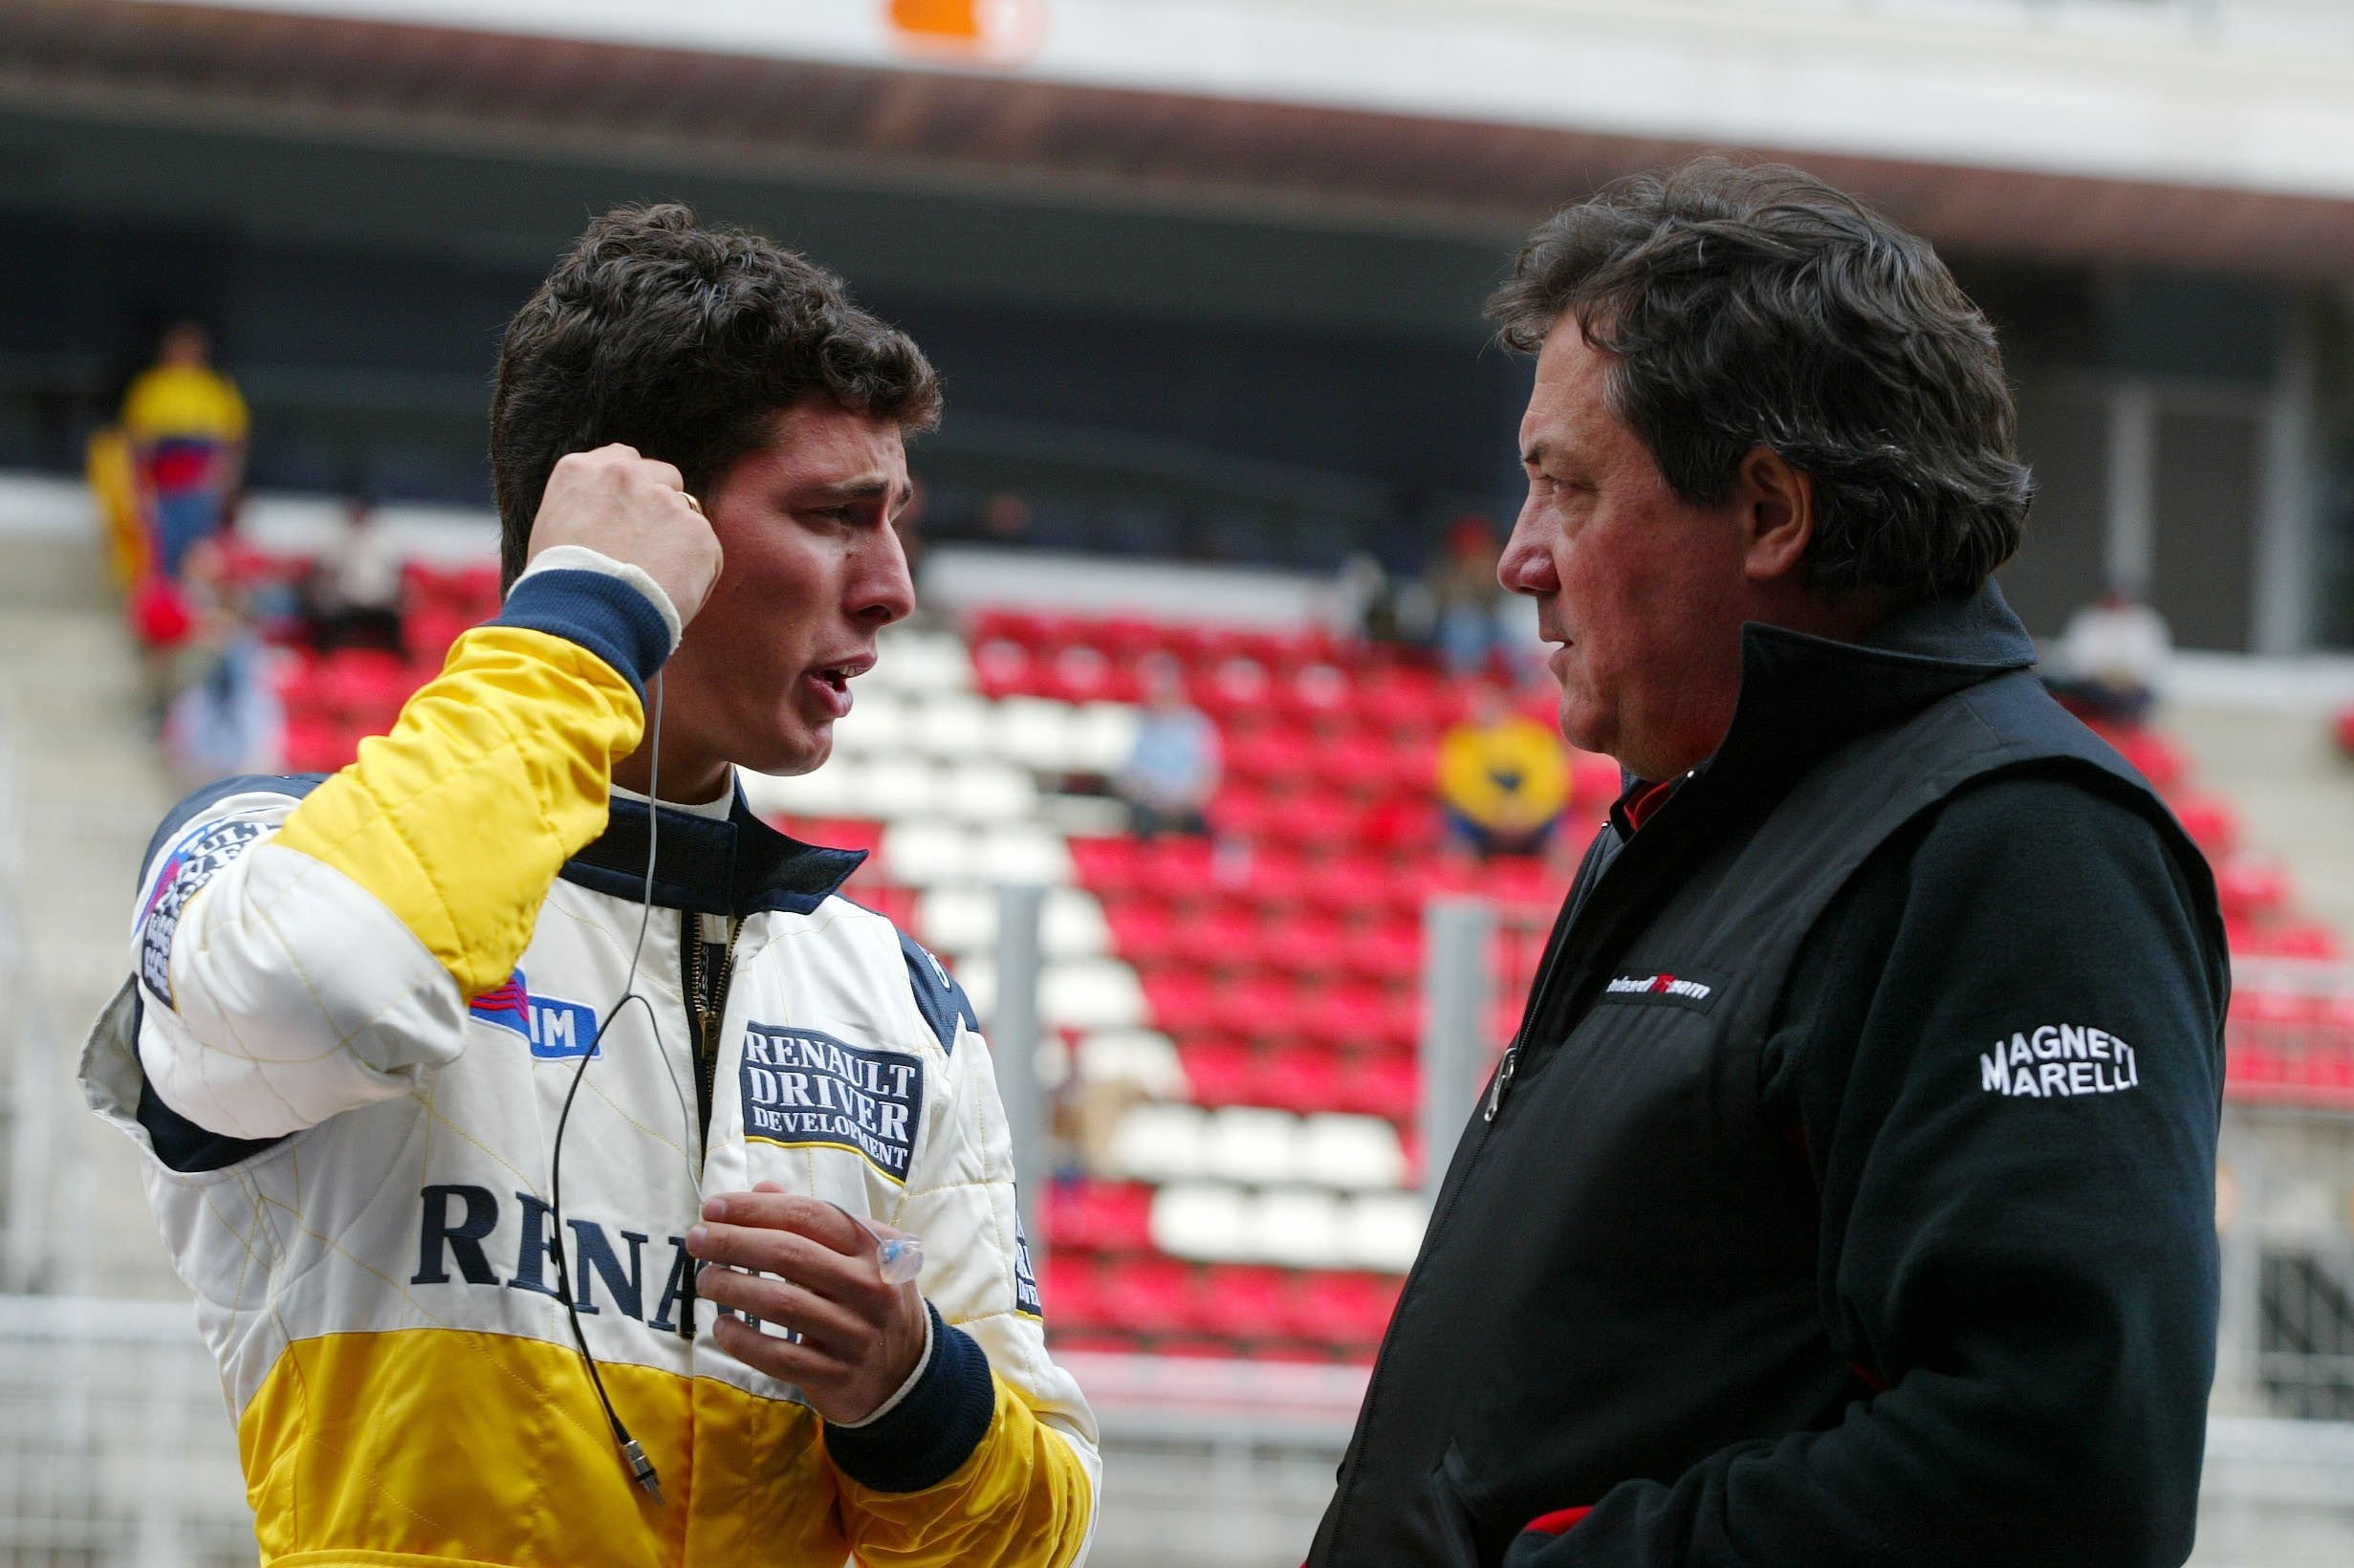 Lopez, pictured with Giancarlo Minardi in 2004, had close ties with Renault until he was cut loose at the end of 2006